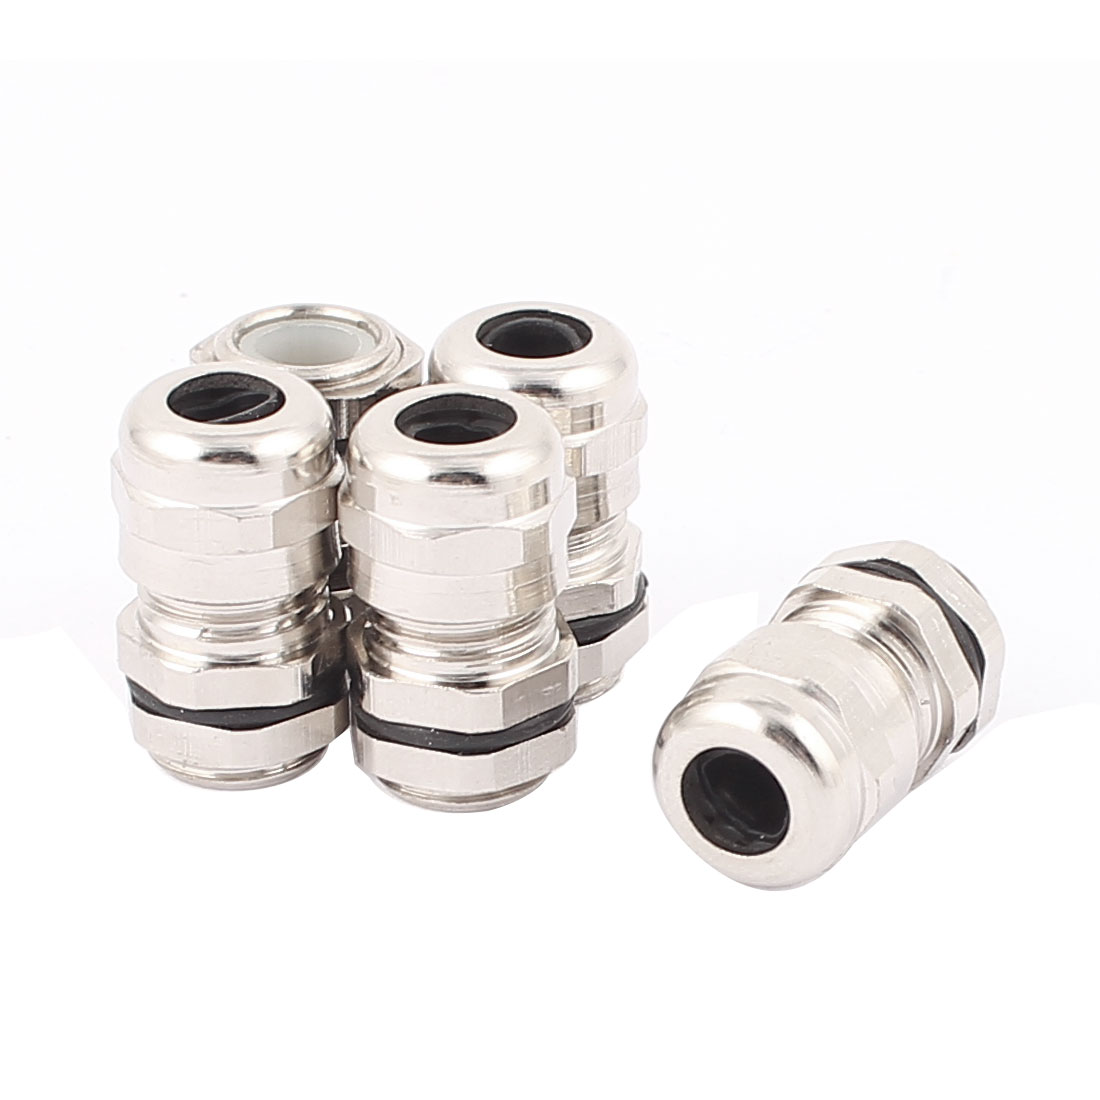 5 Pcs PG7 Metal Waterproof Locknut Stuffing Cable Gland Connector